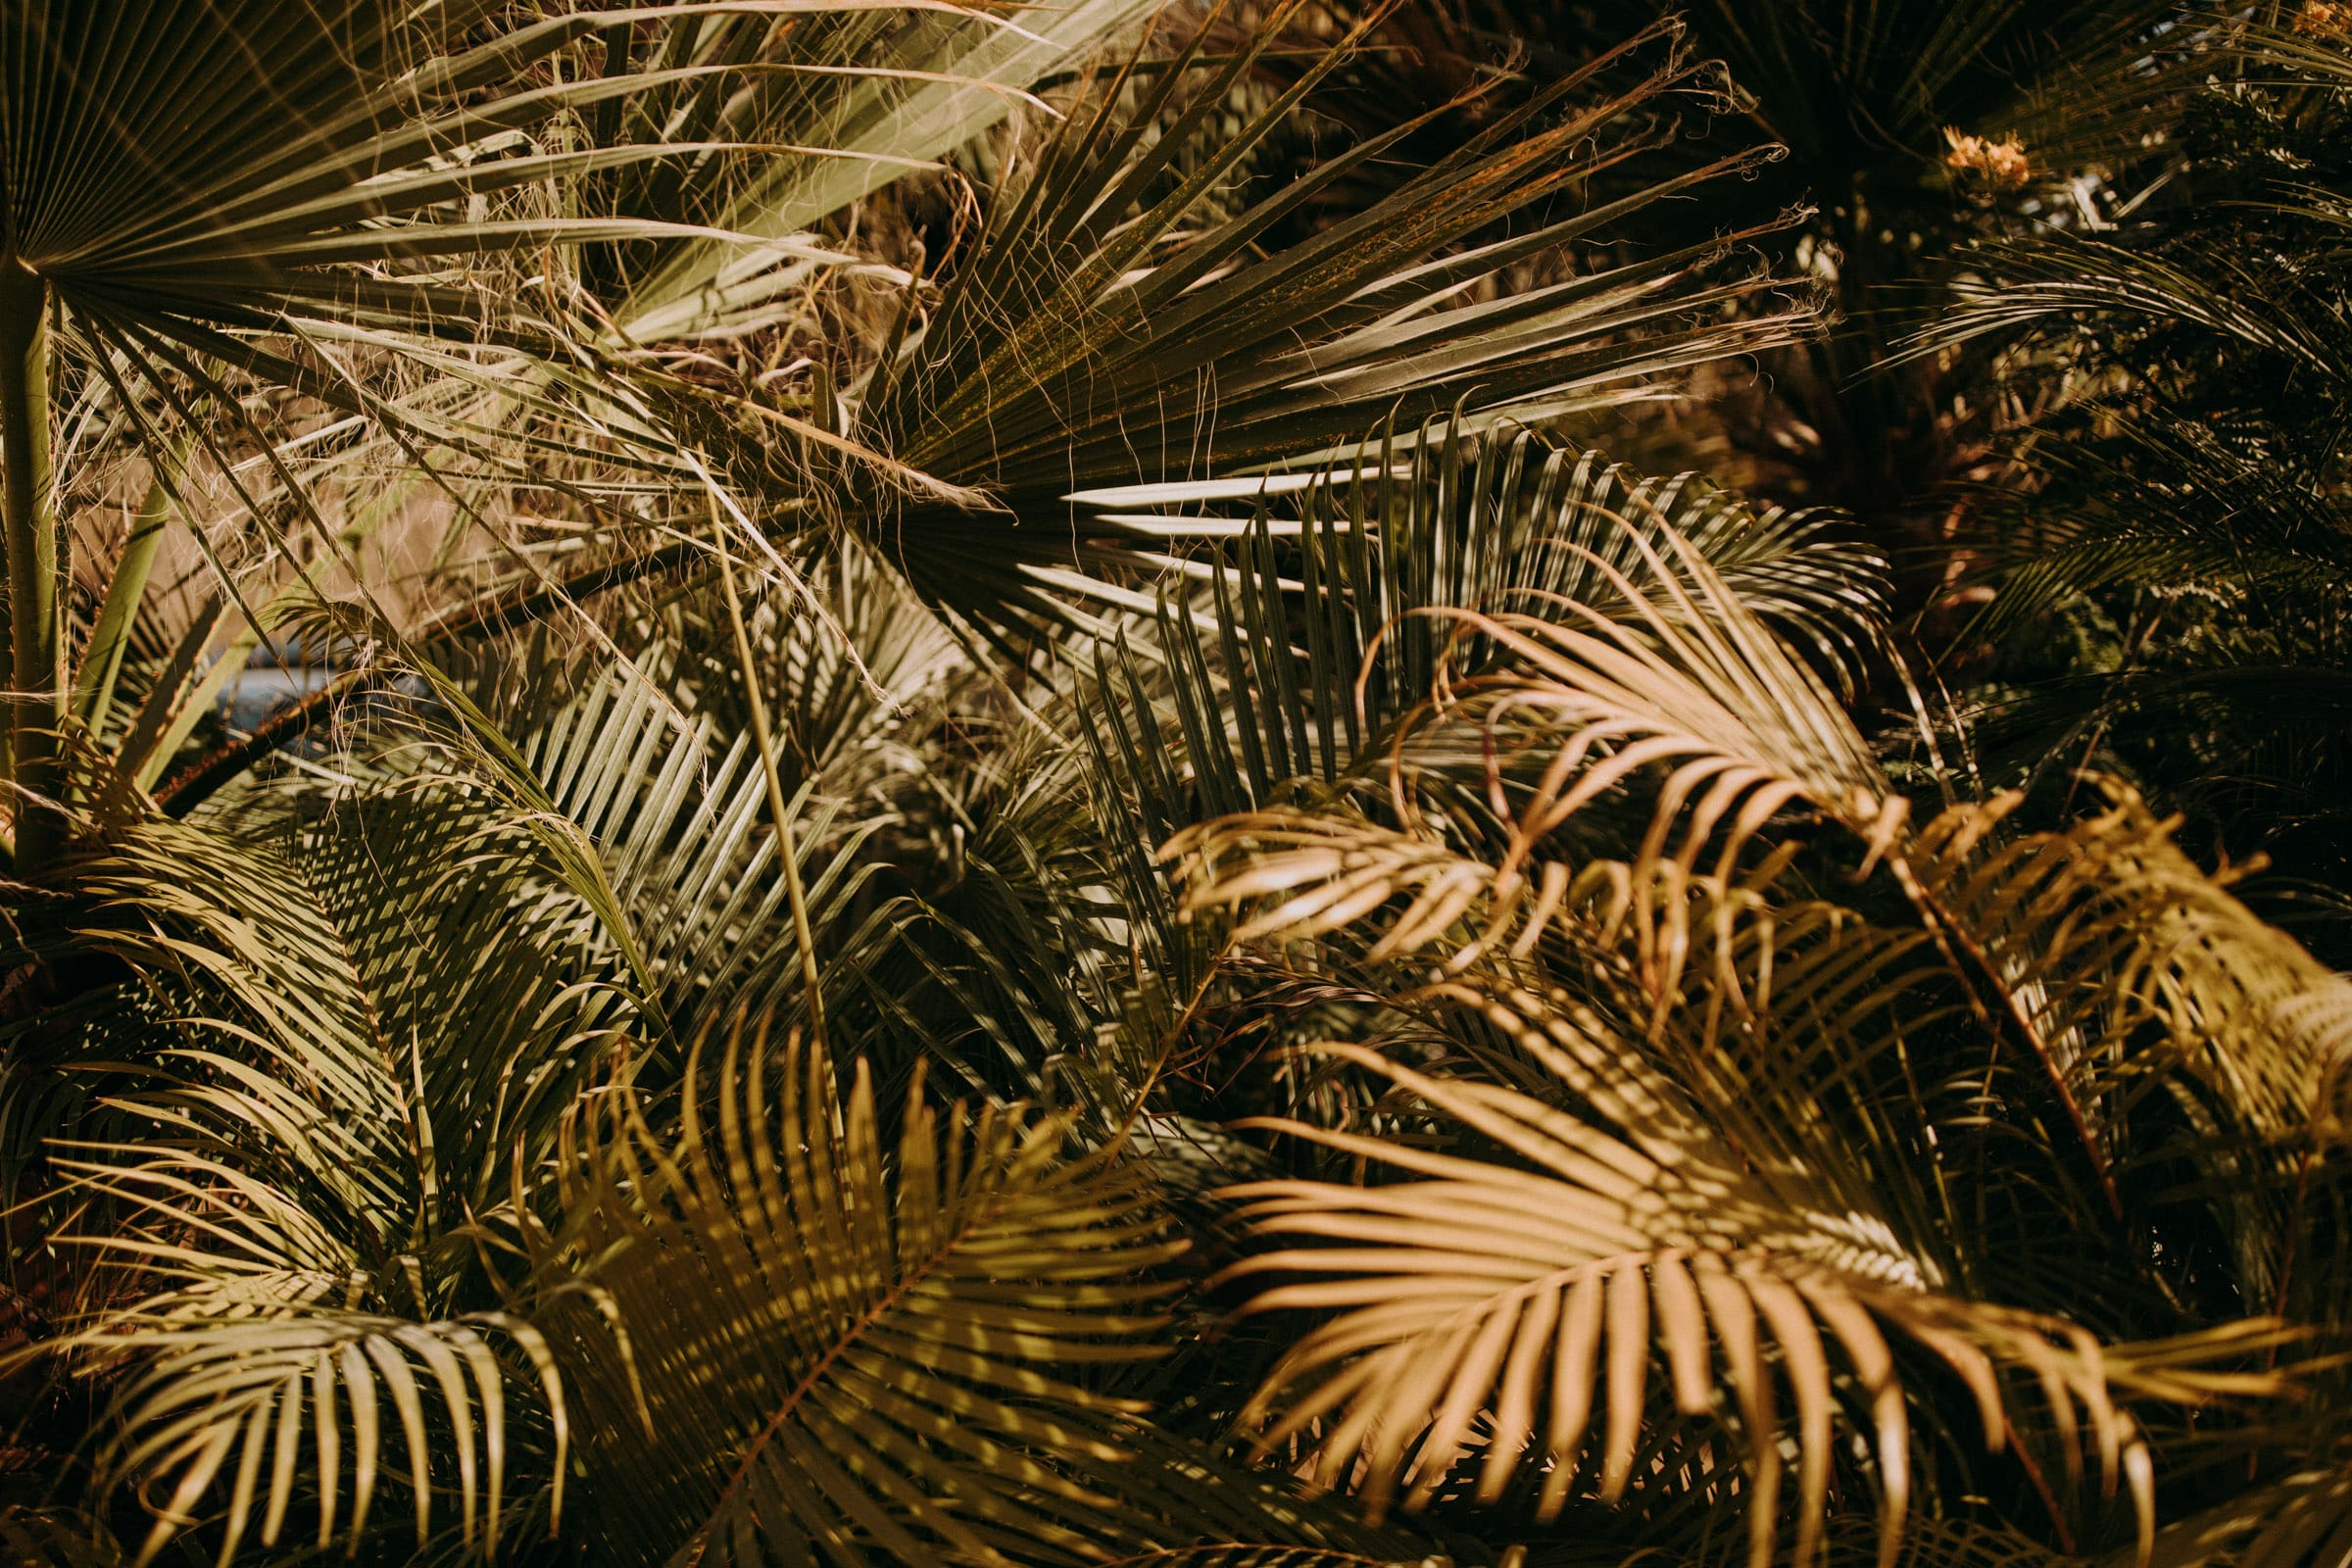 The picture shows leaves of palm trees.